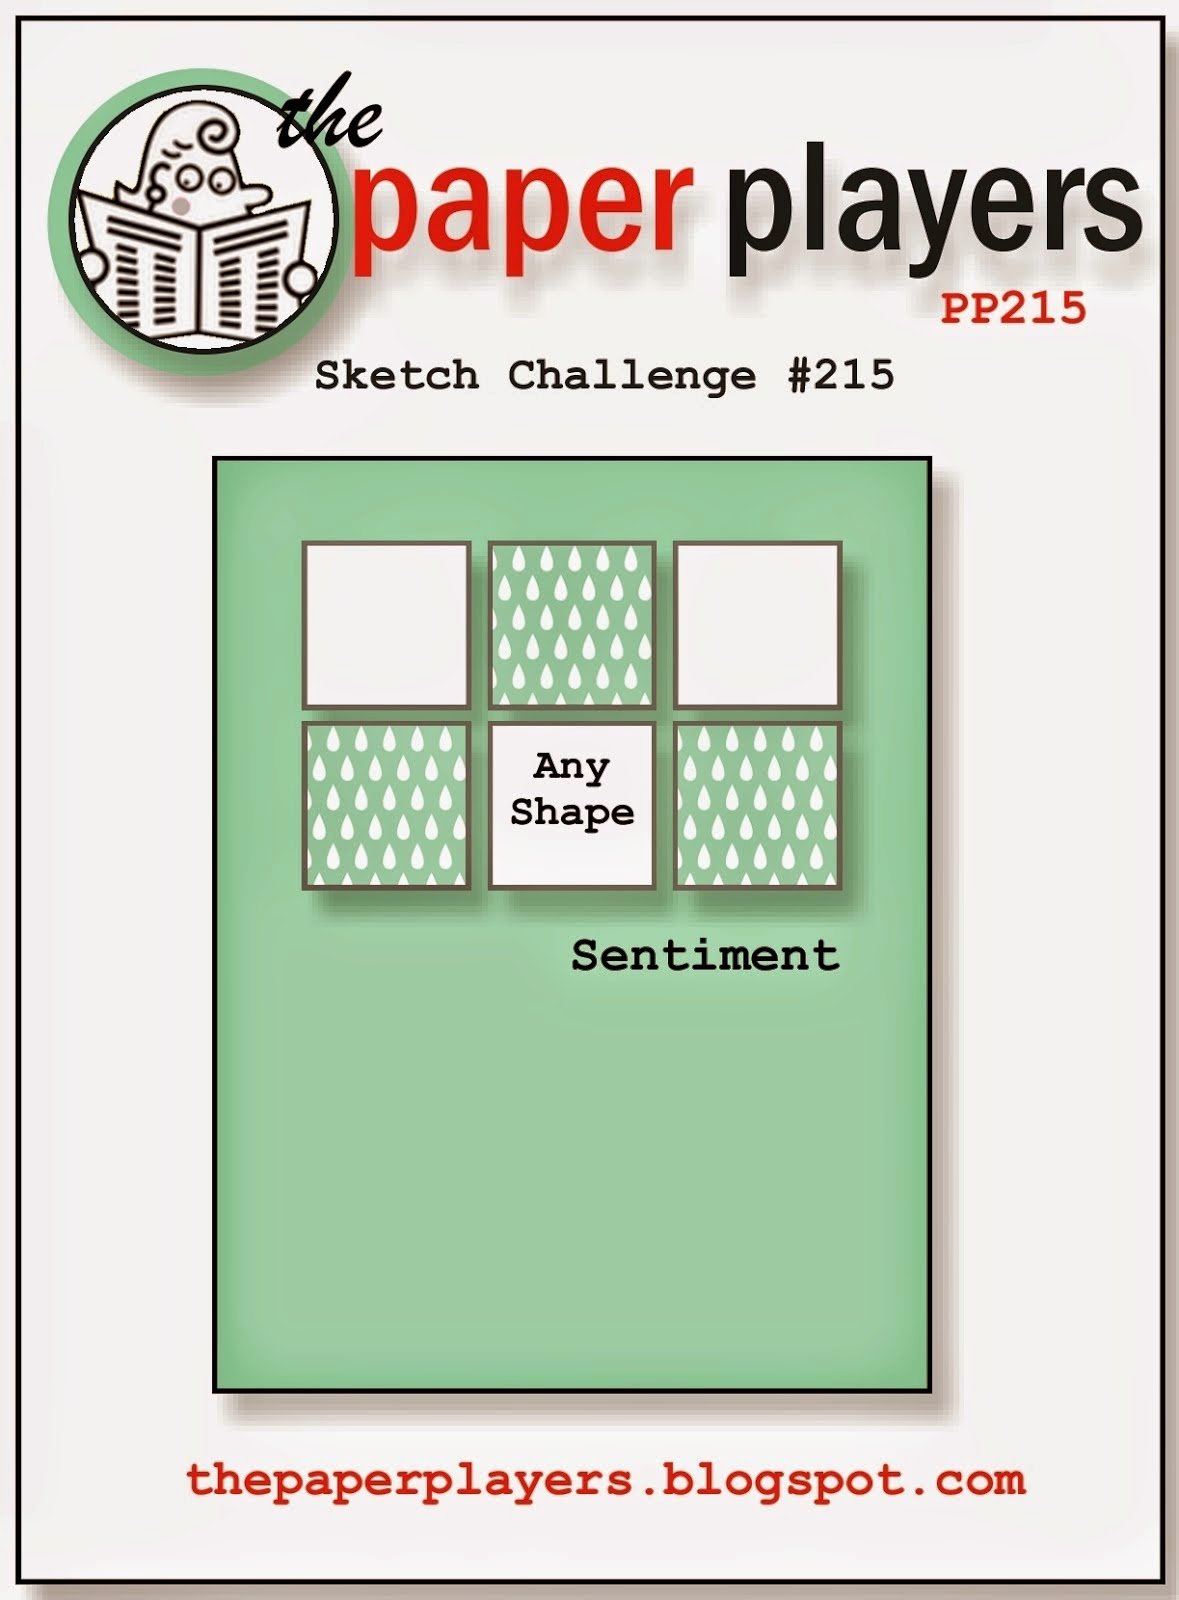 http://thepaperplayers.blogspot.ca/2014/09/paper-players-challenge-215-sketch-from.html